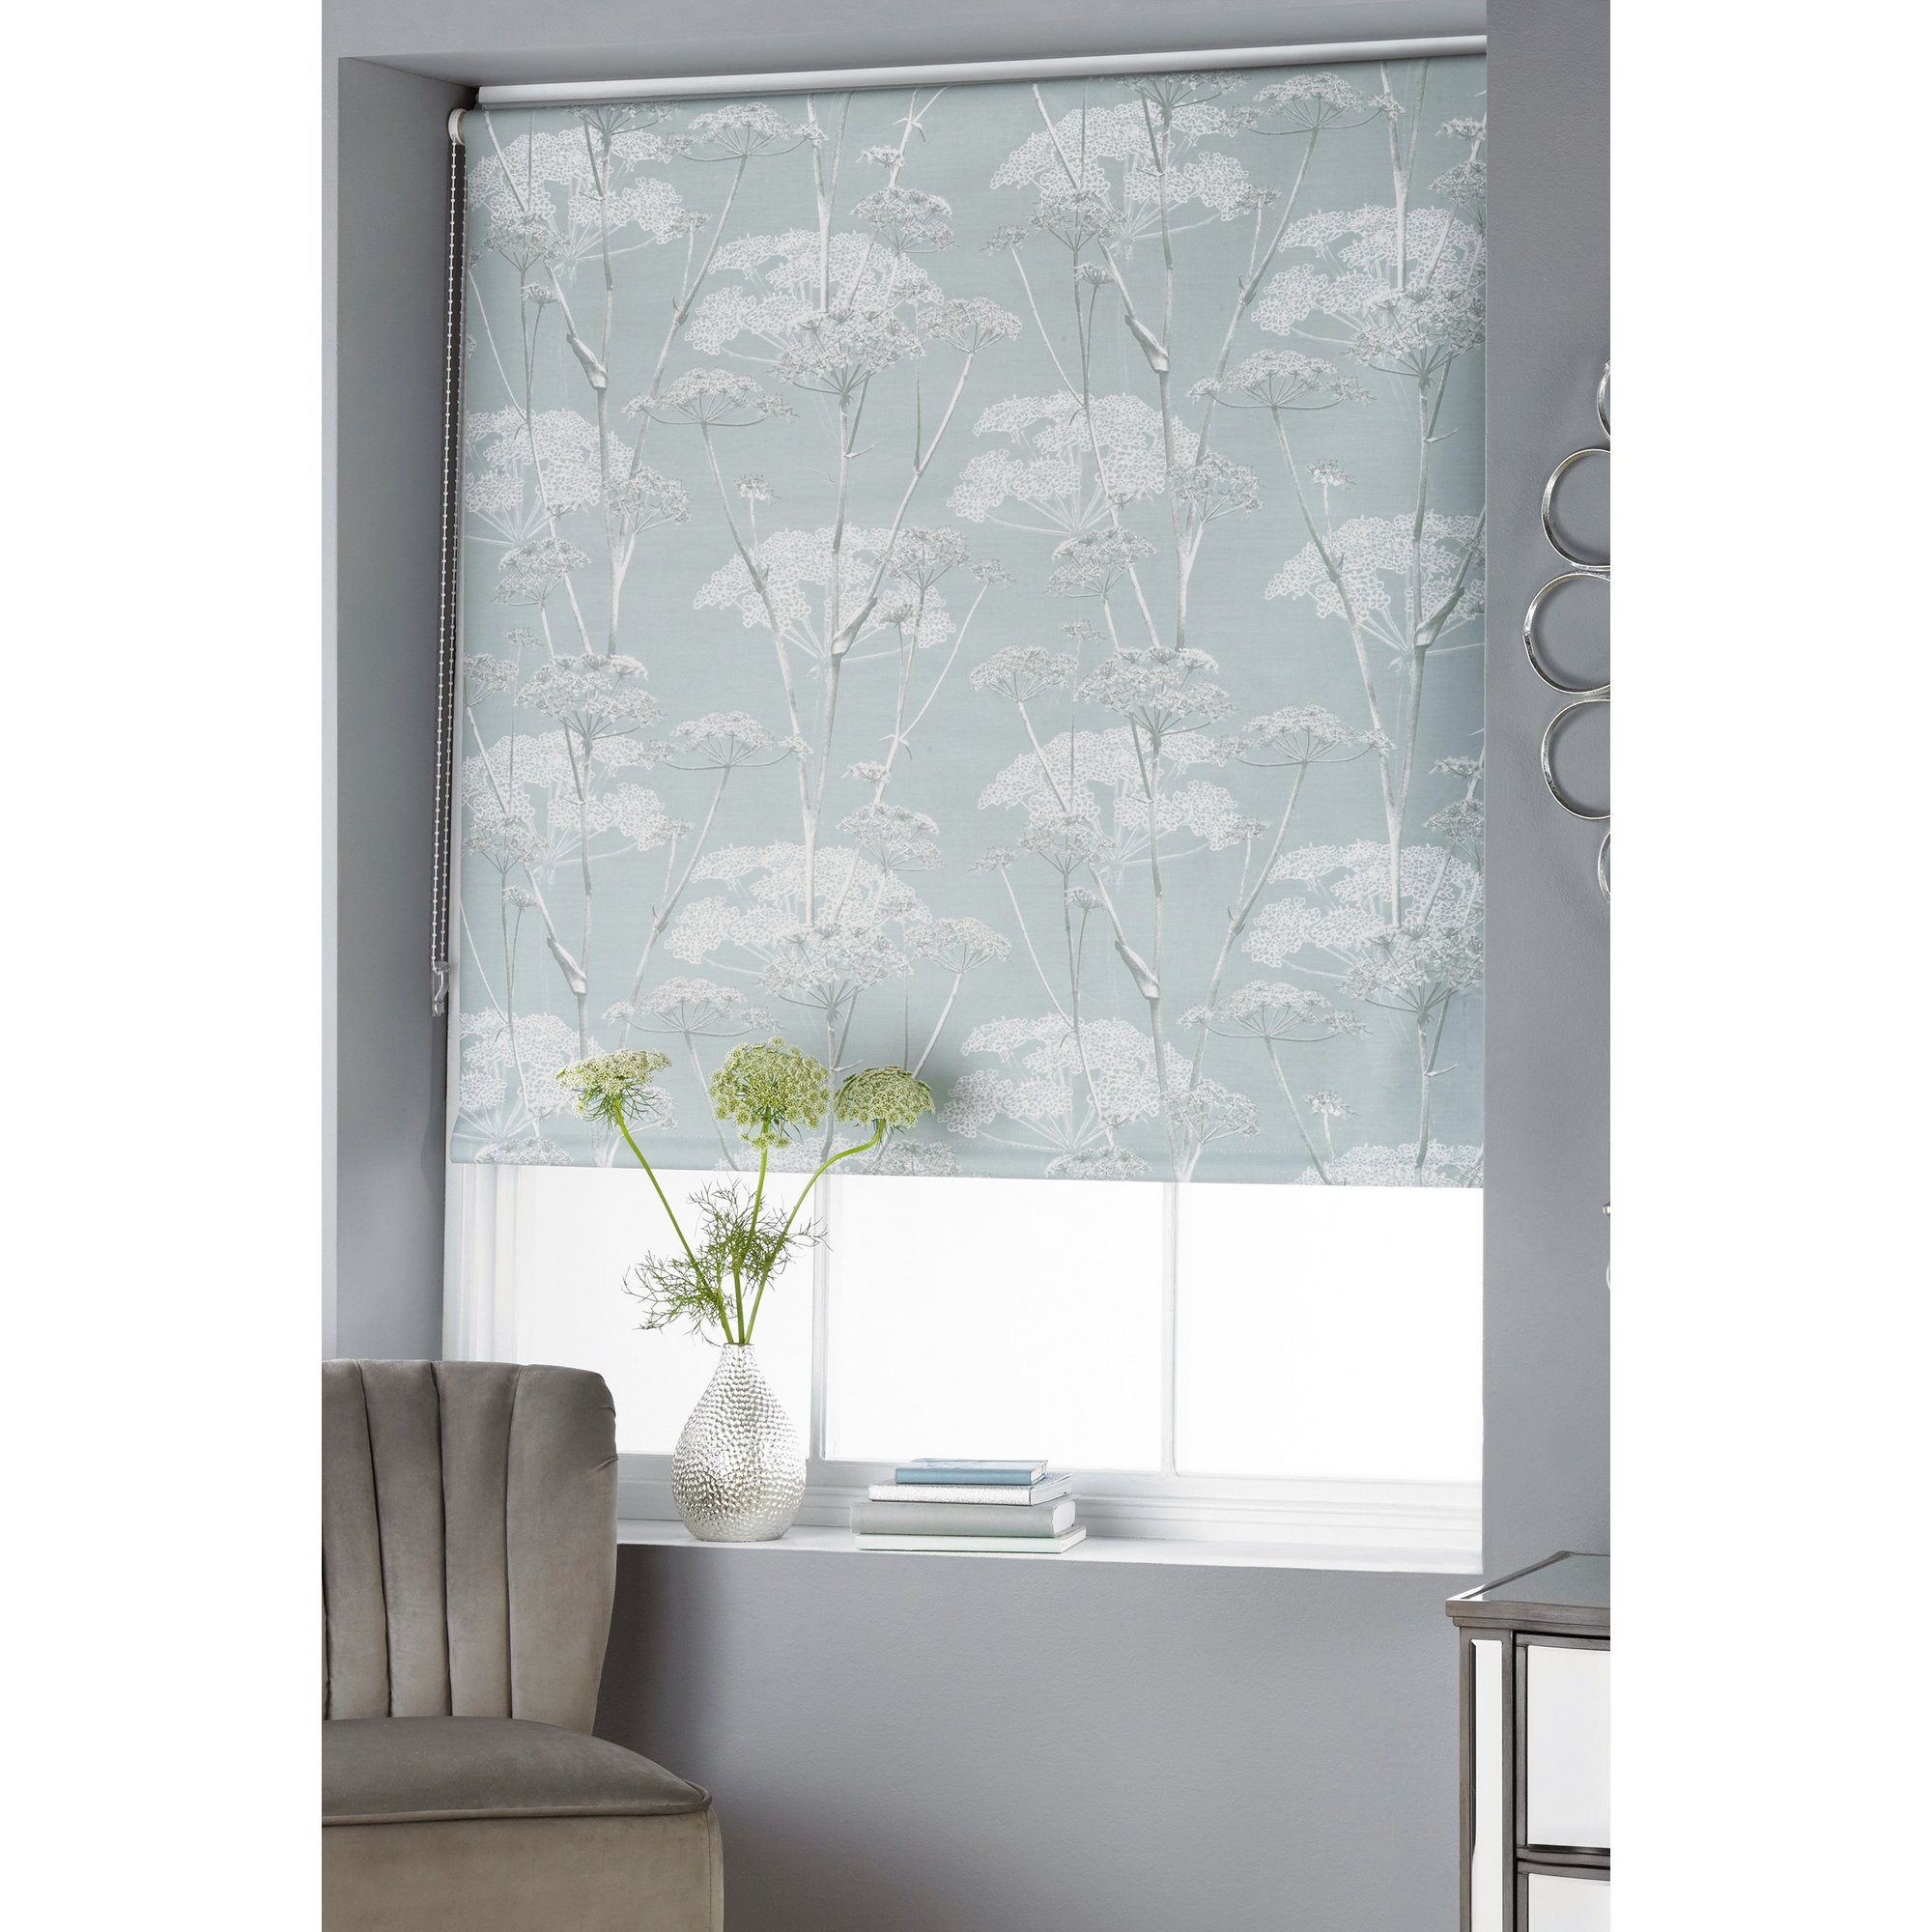 Image of Cow Parsley Printed Duck Egg Blackout Blind